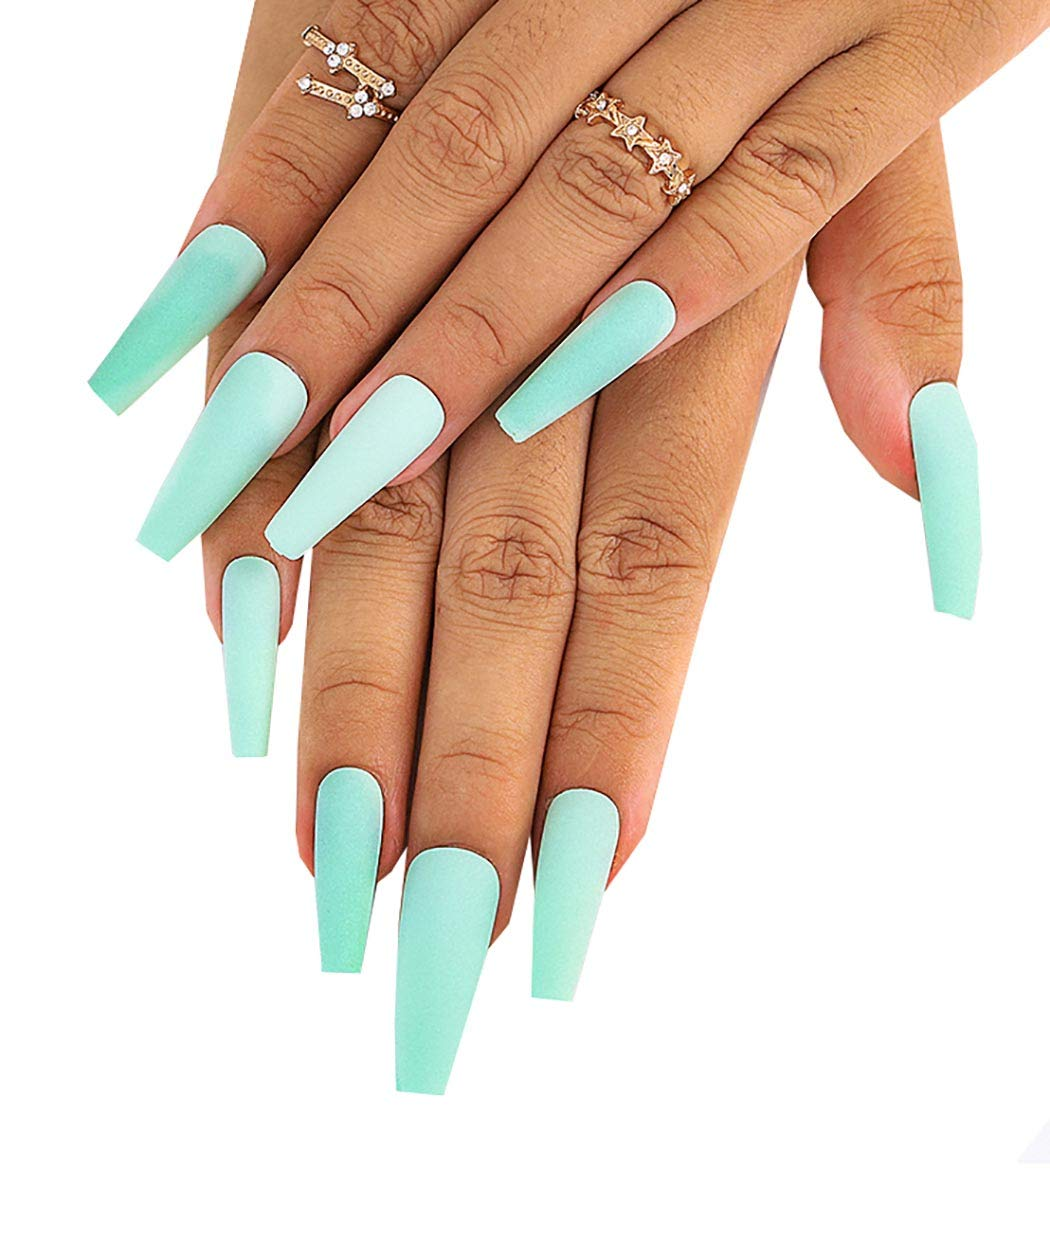 Fstrend Coffin Fake Nails Extra Long Ballet Ballerina Green Matte Full Acrylic Cover Press on Nail for Women and Girls (Light Green)